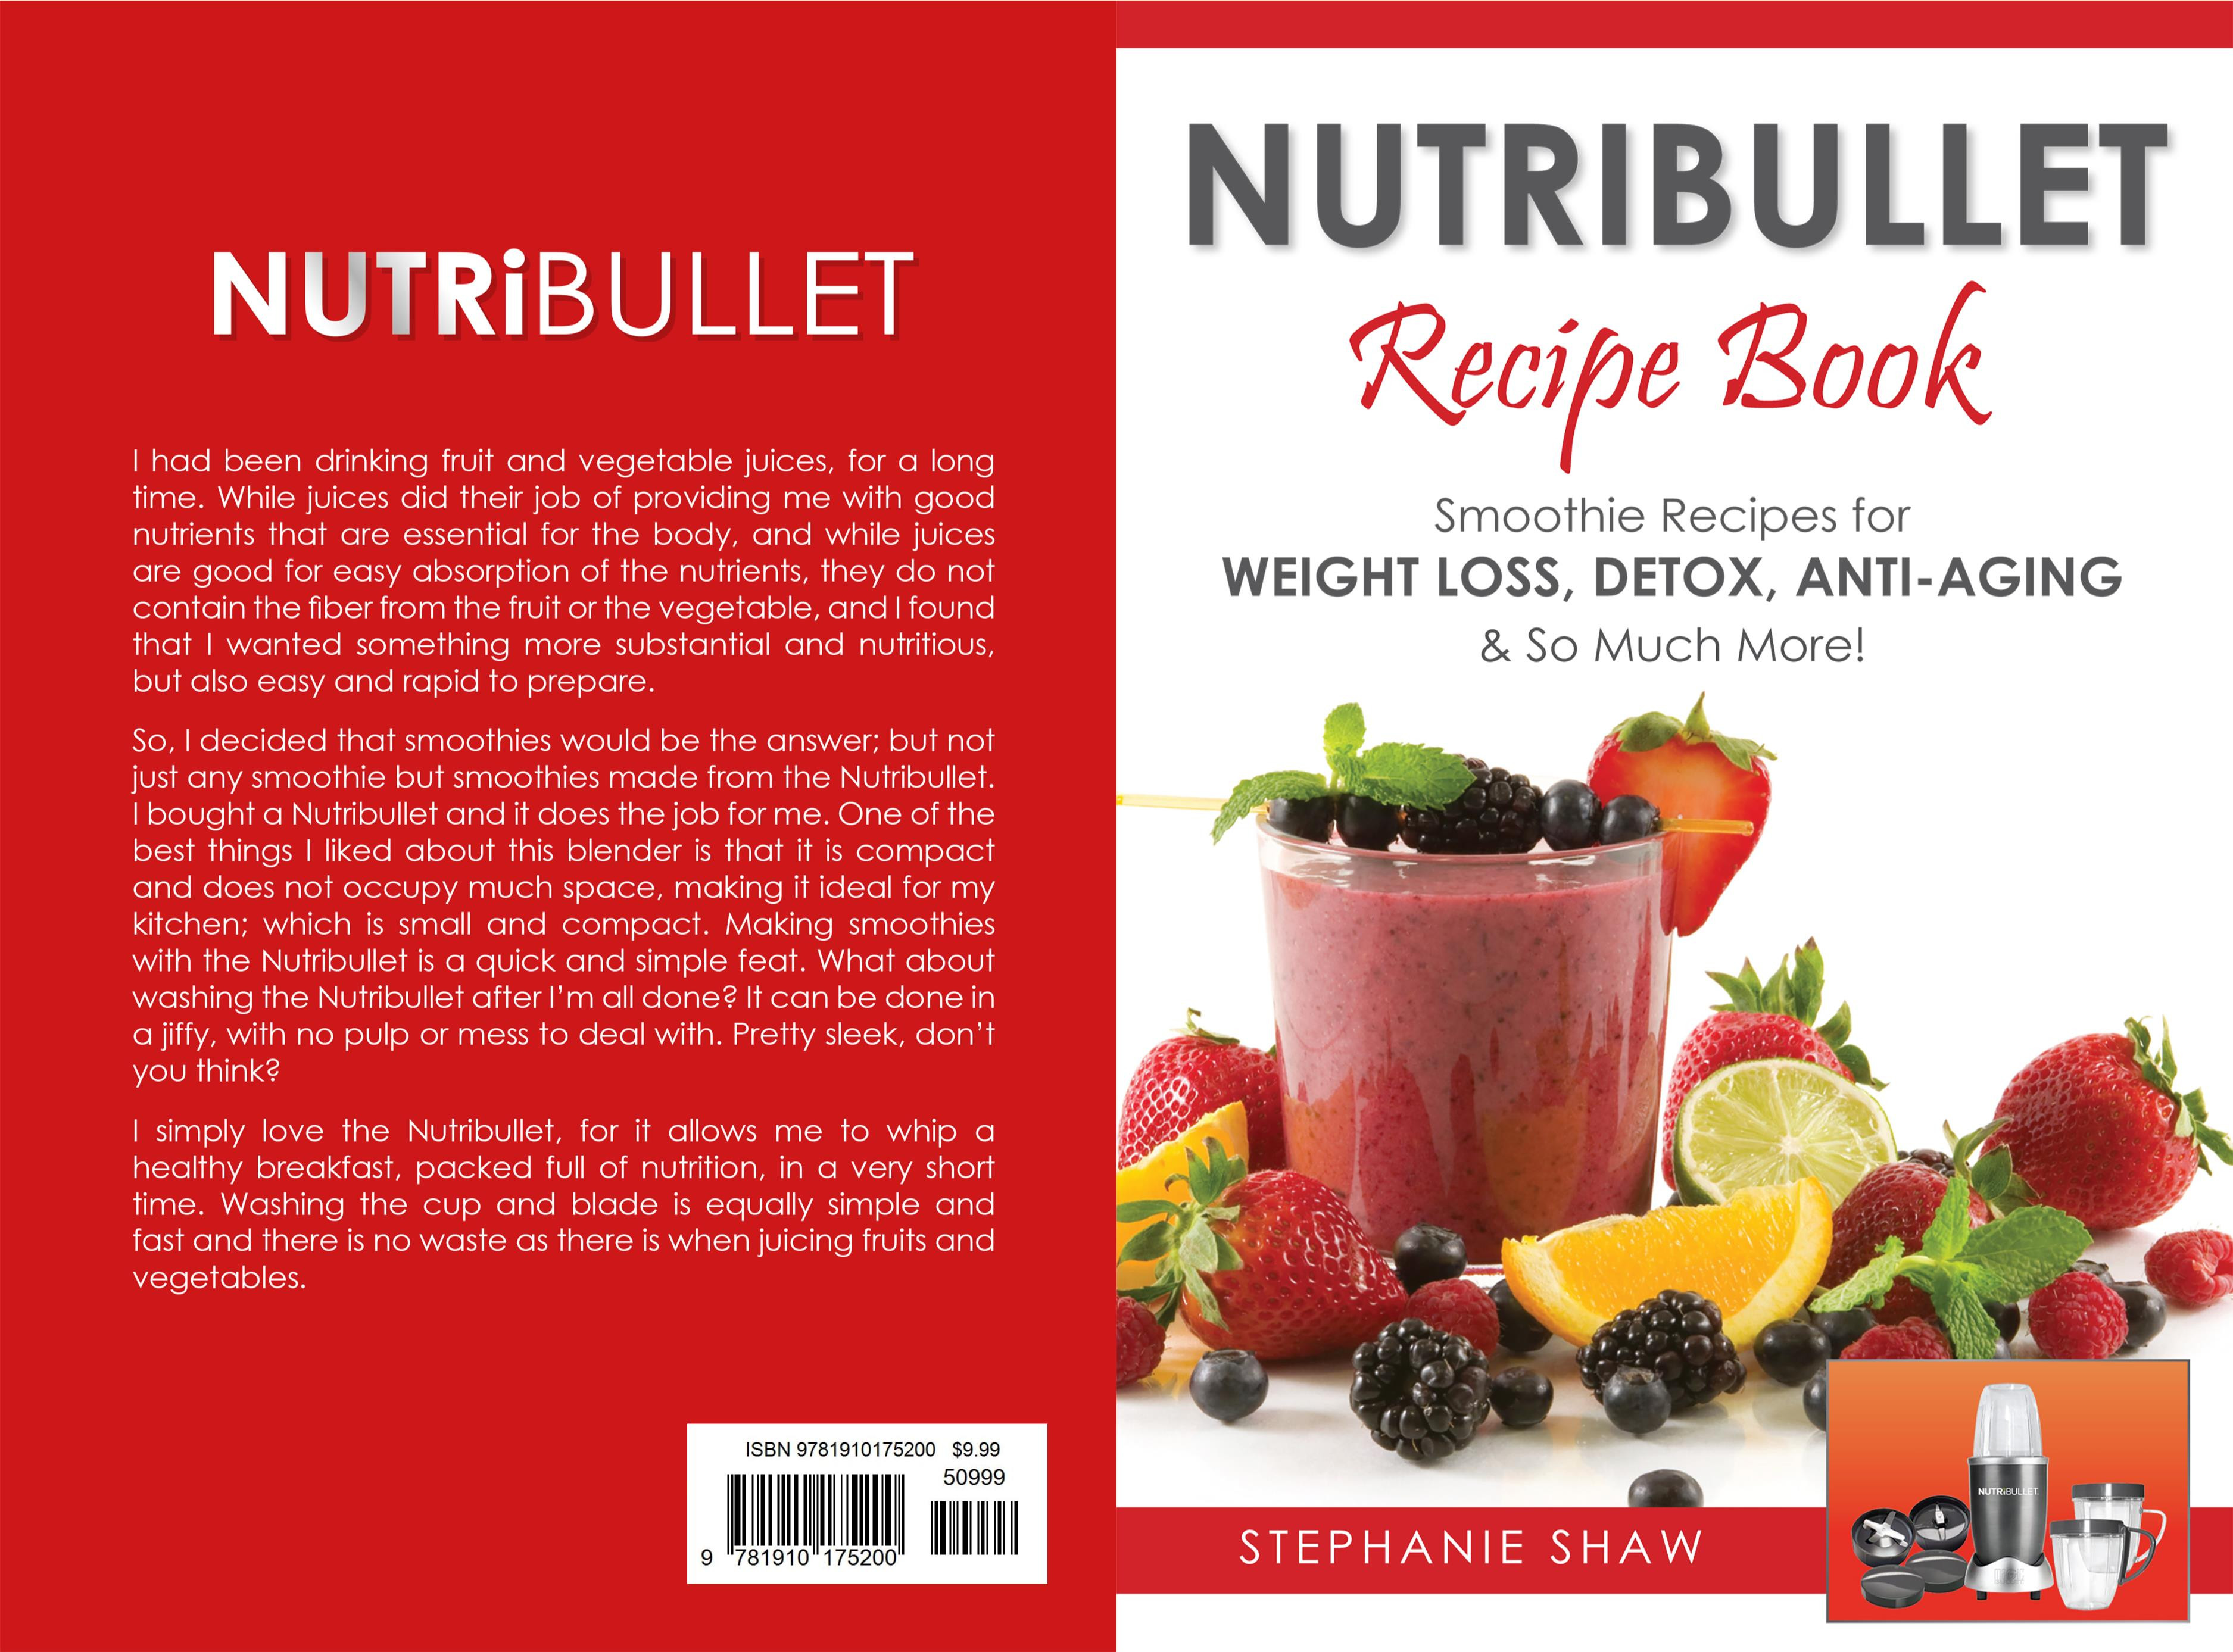 Nutribullet Smoothie Recipes  Nutribullet Recipe Book Smoothie Recipes for Weight Loss